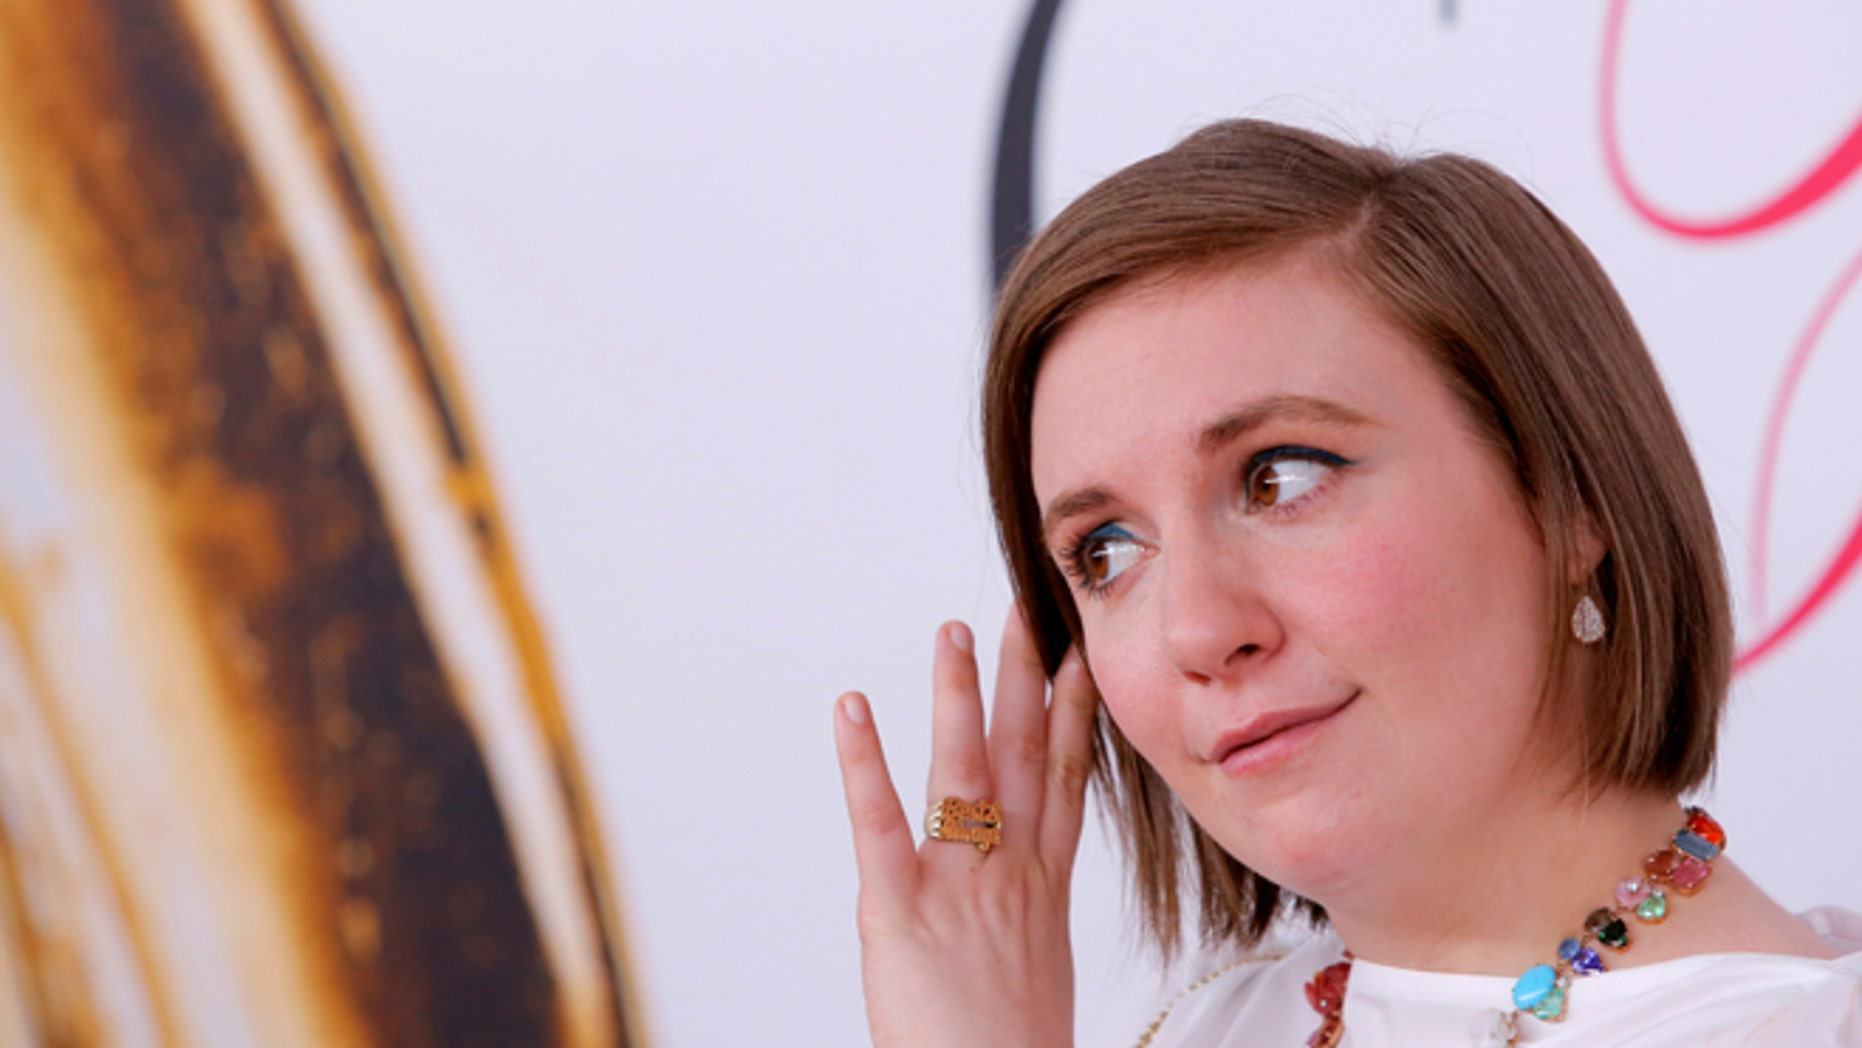 Lena Dunham posted an unusual photo for the holiday season.